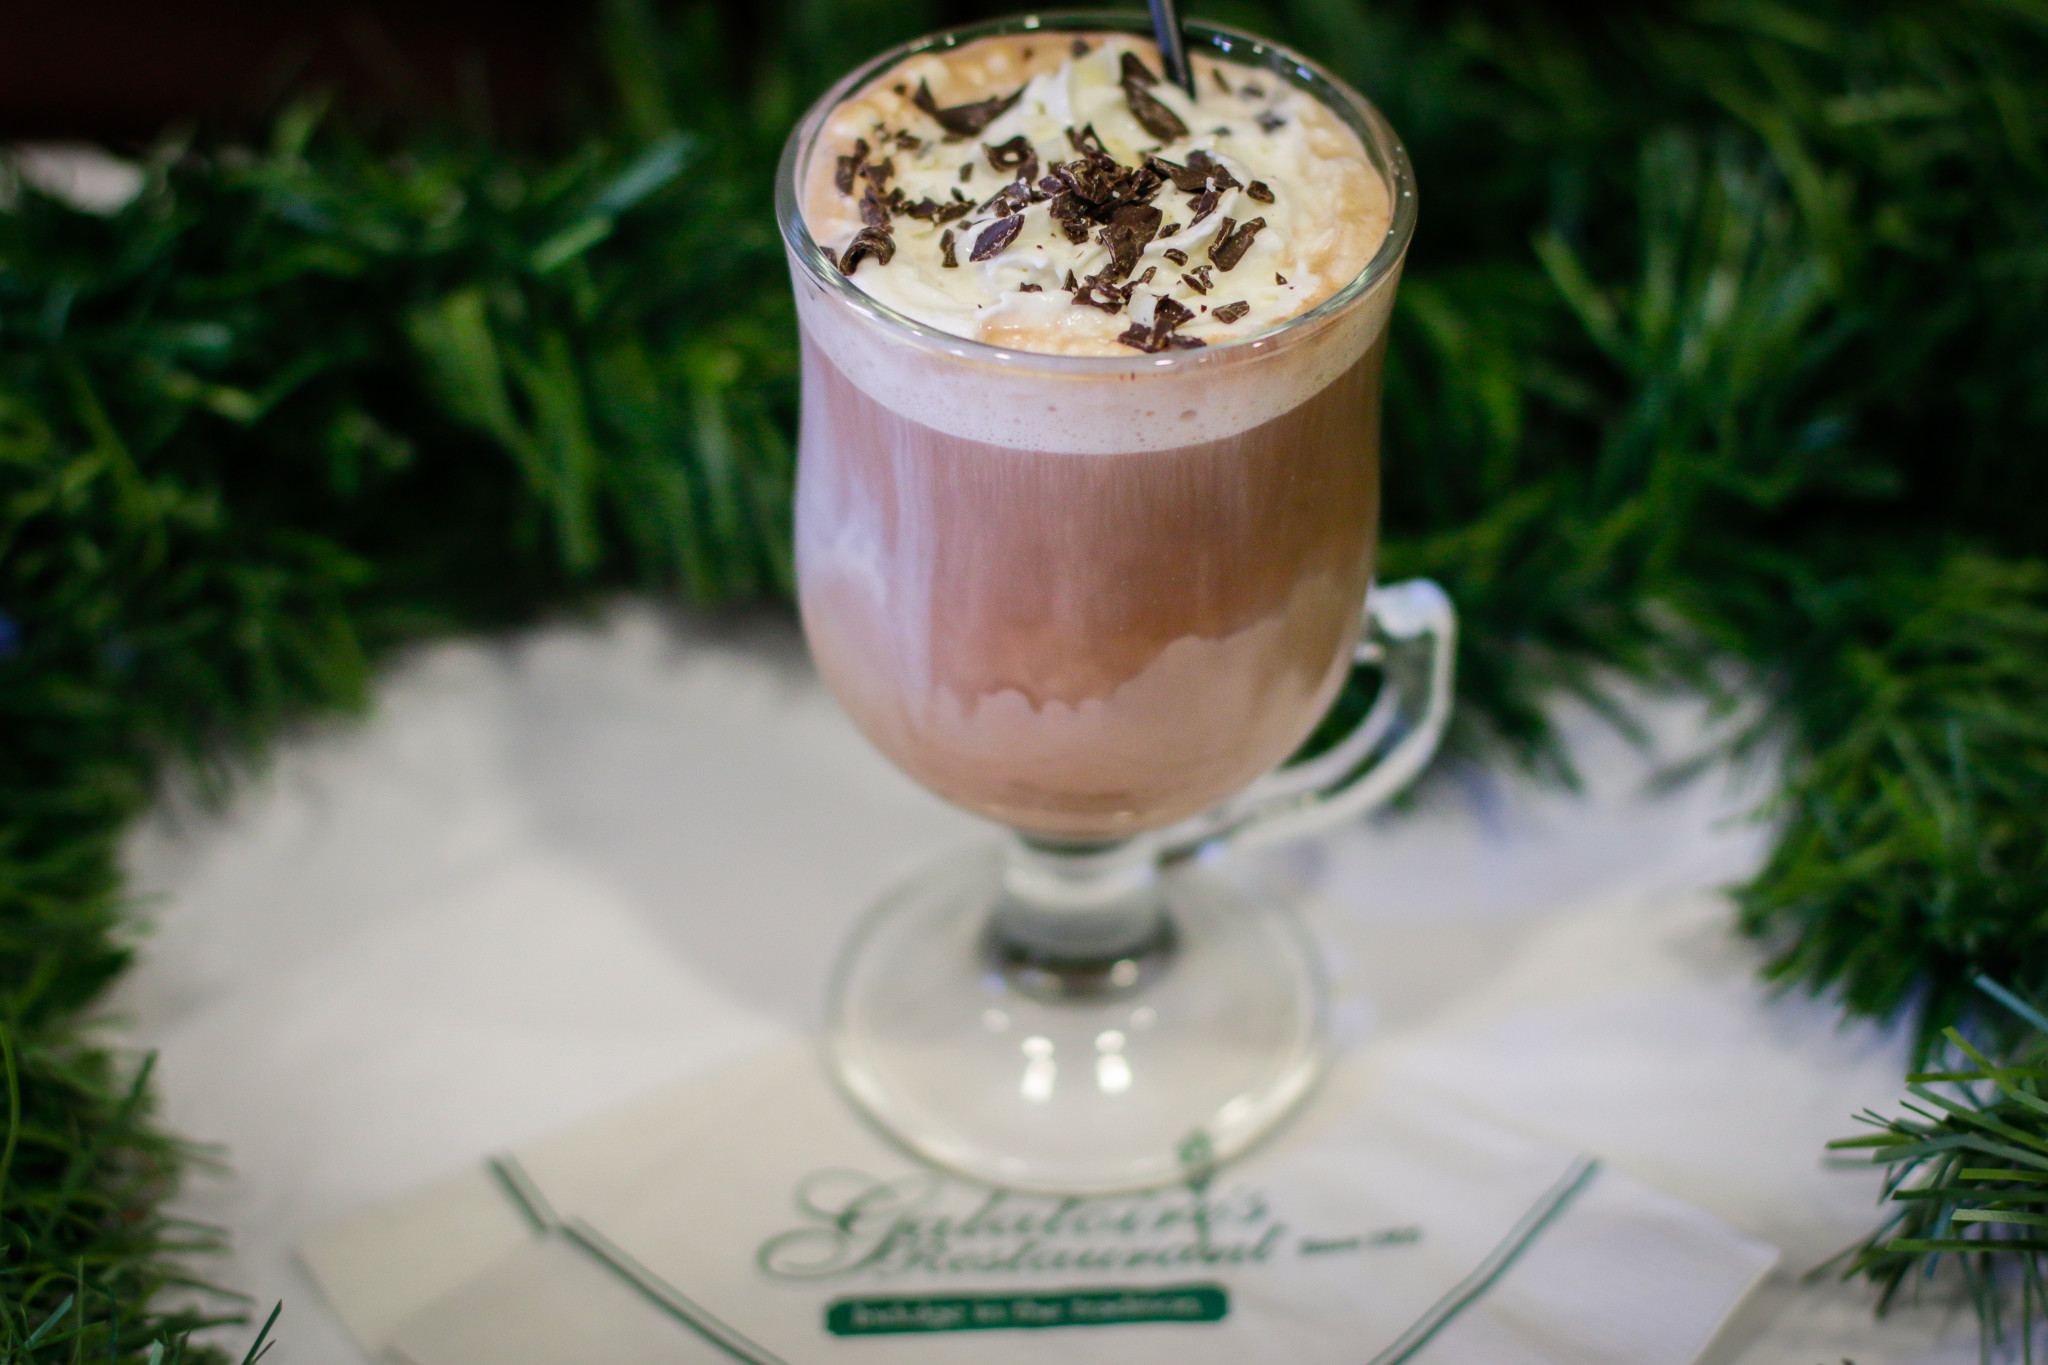 A chocolately, warming cocktail from Galatoire's. (Photo: Rebecca Ratliff)